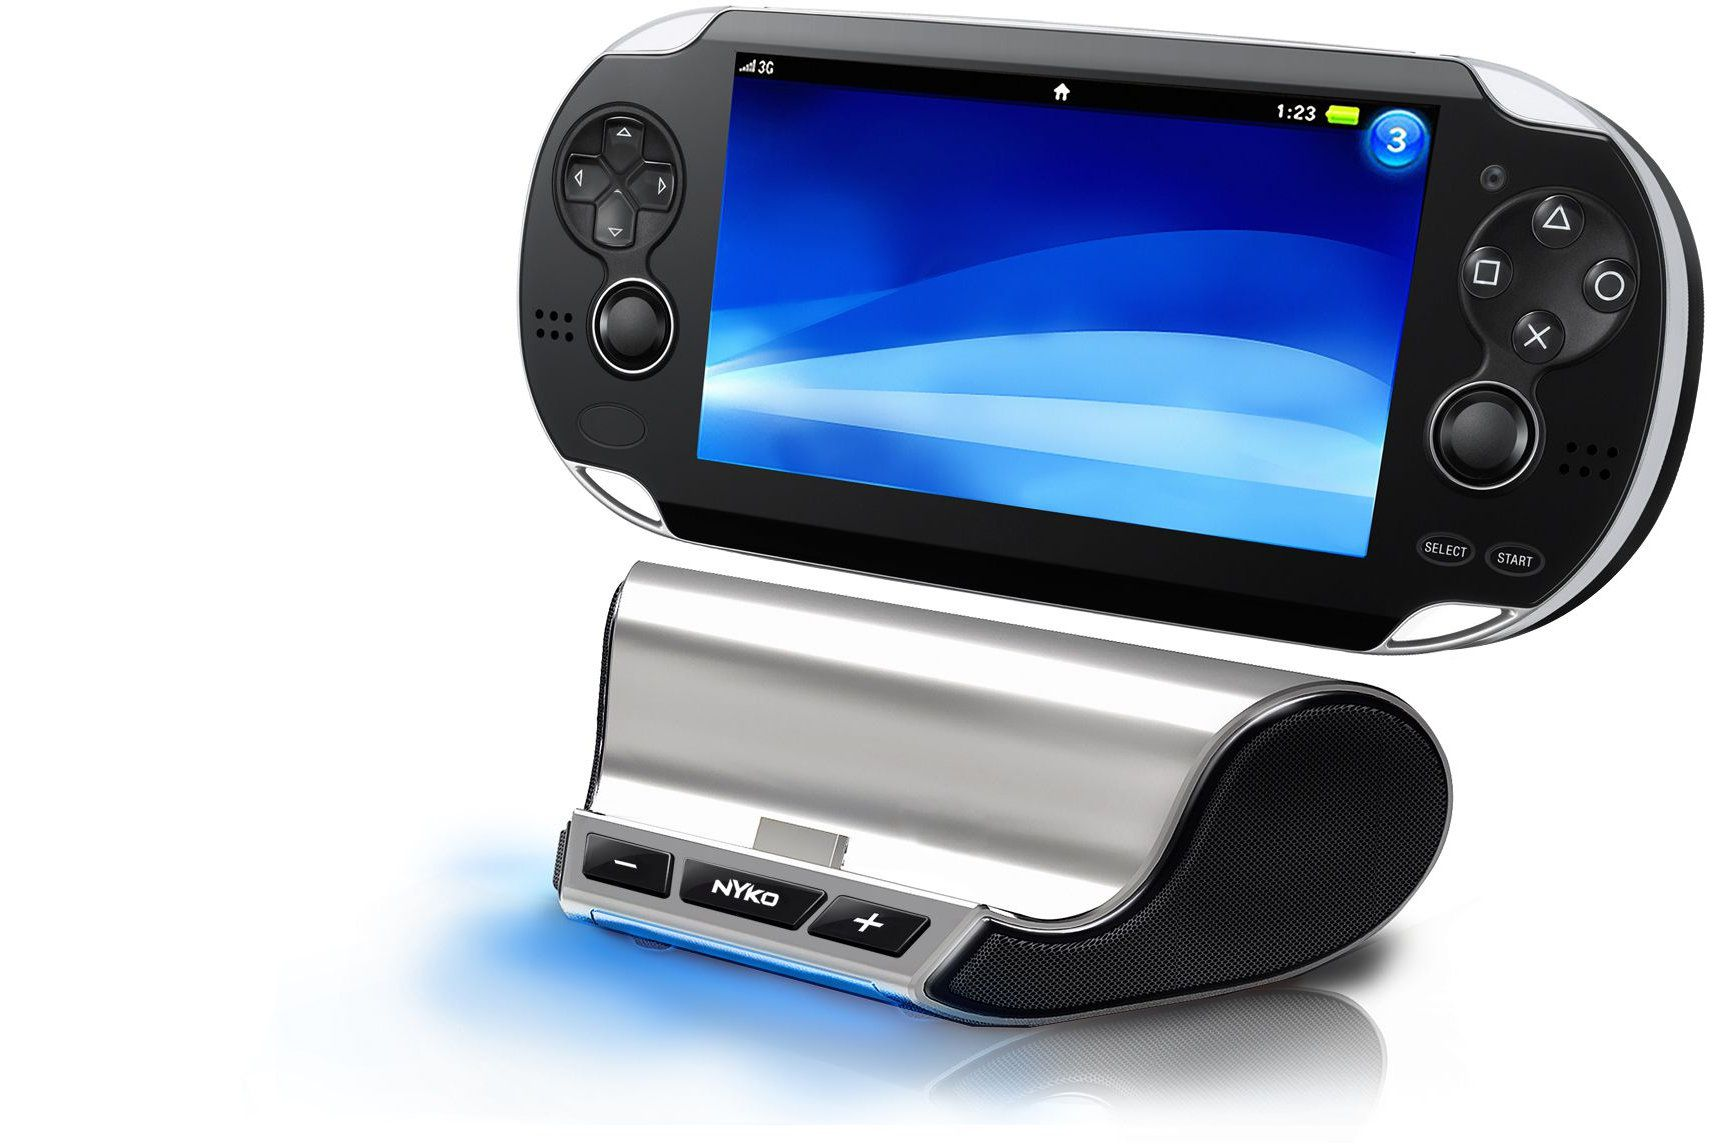 How to Play Music on a PS Vita Game Console